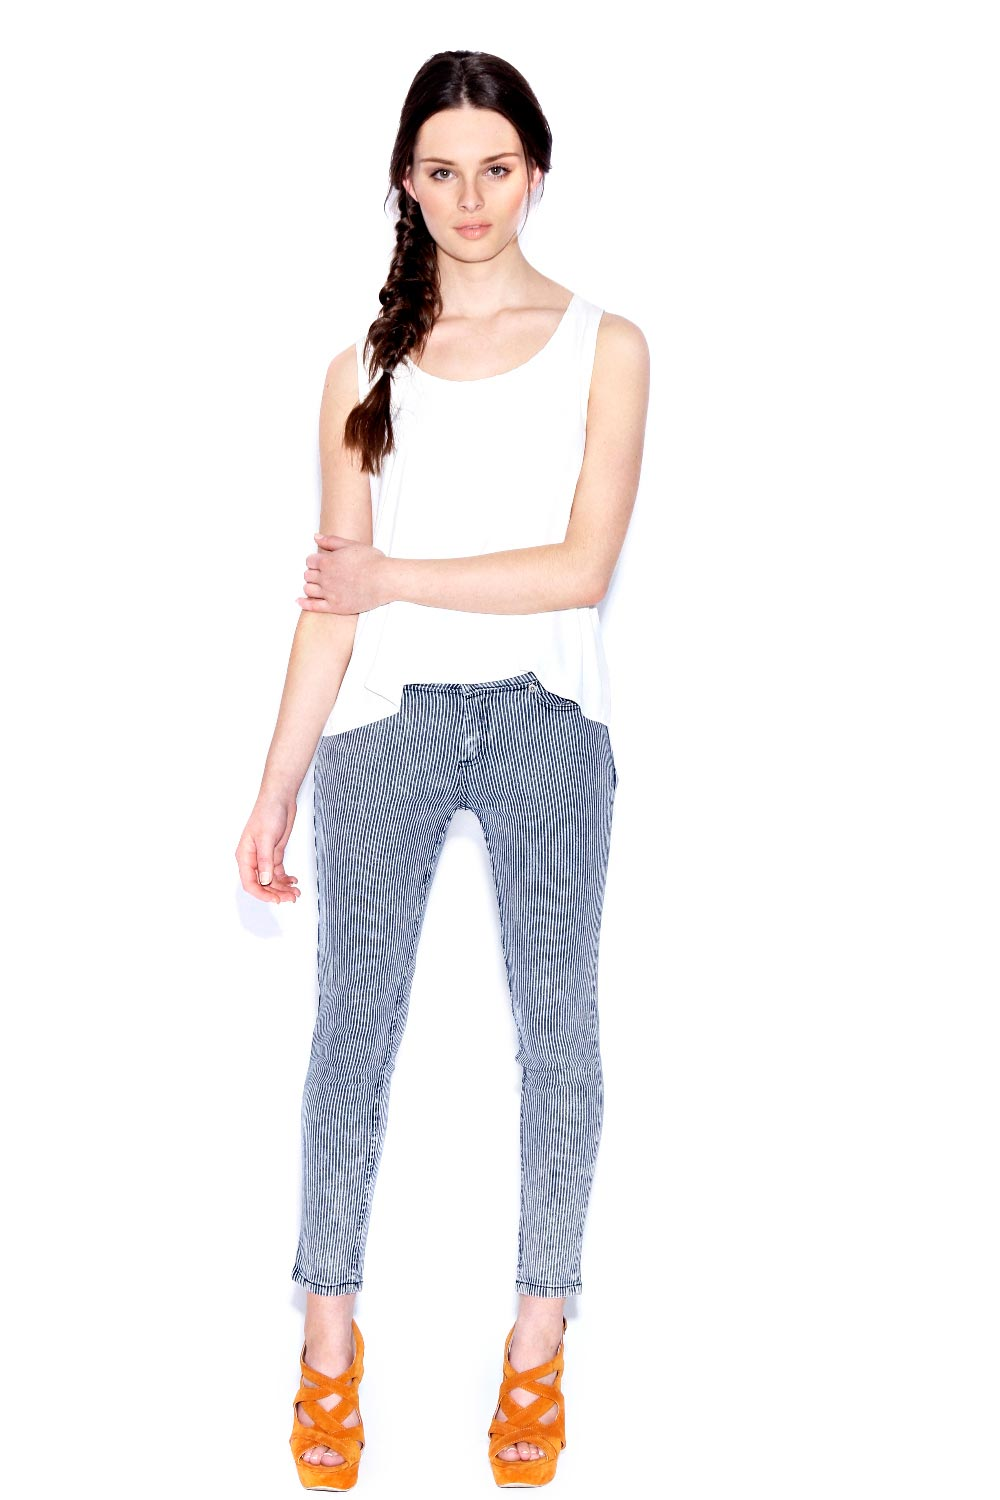 Boohoo-Tally-Stretch-Distressed-Striped-Skinny-Jeans-in-Blue